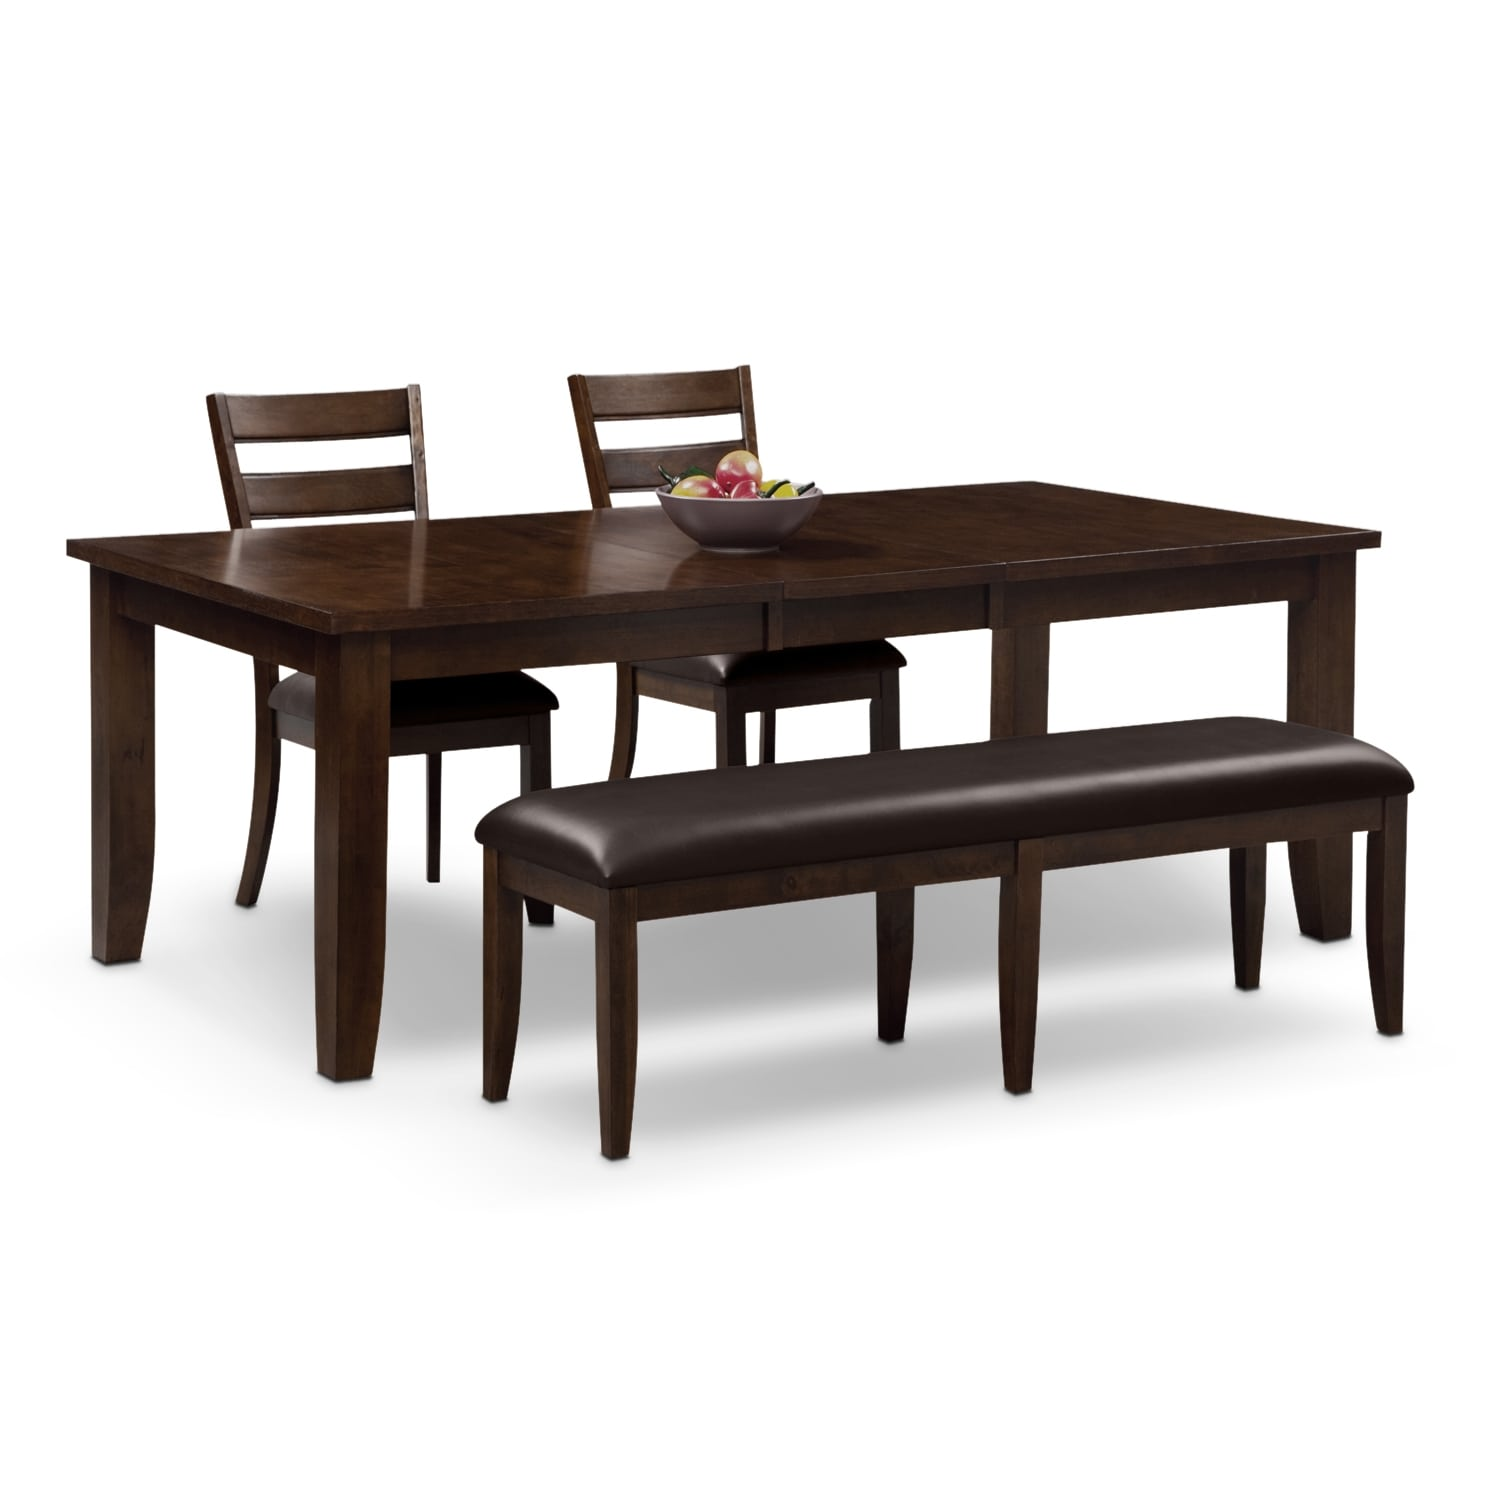 Charmant Abaco Table, 2 Chairs And Bench   Brown